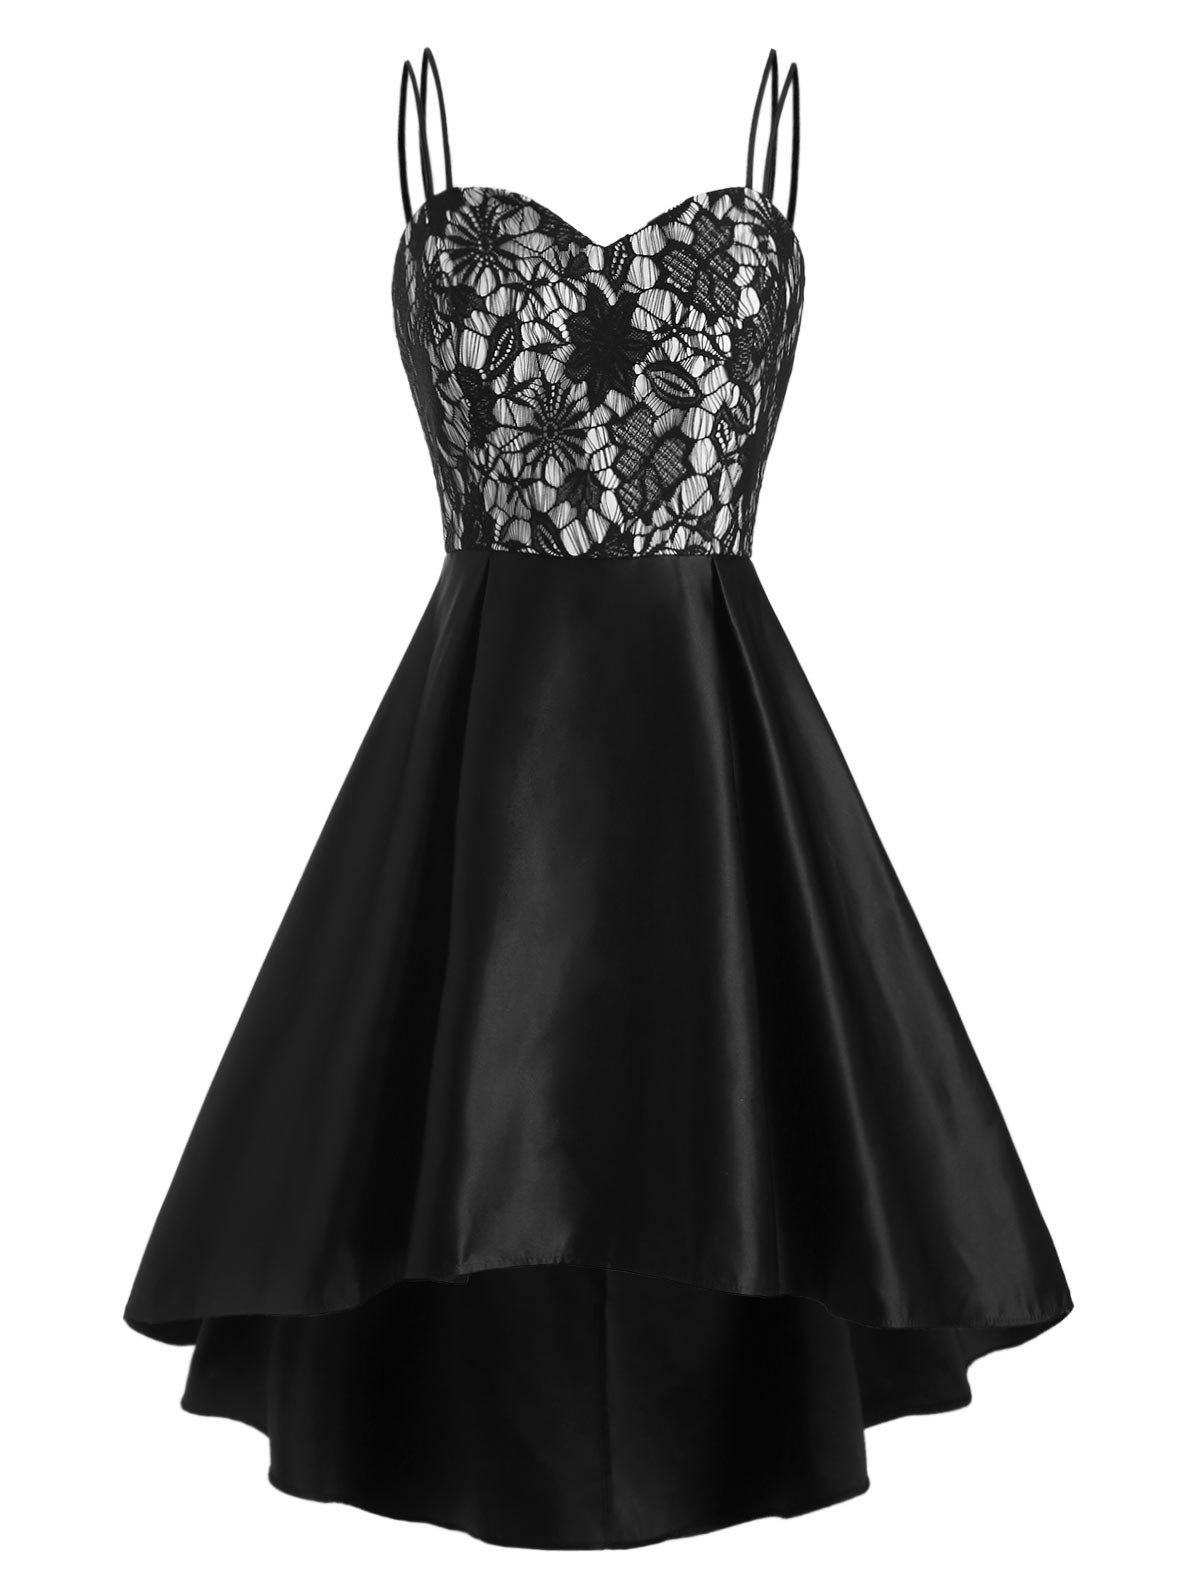 Flower Lace Empire Waist High Low Party Dress - BLACK S